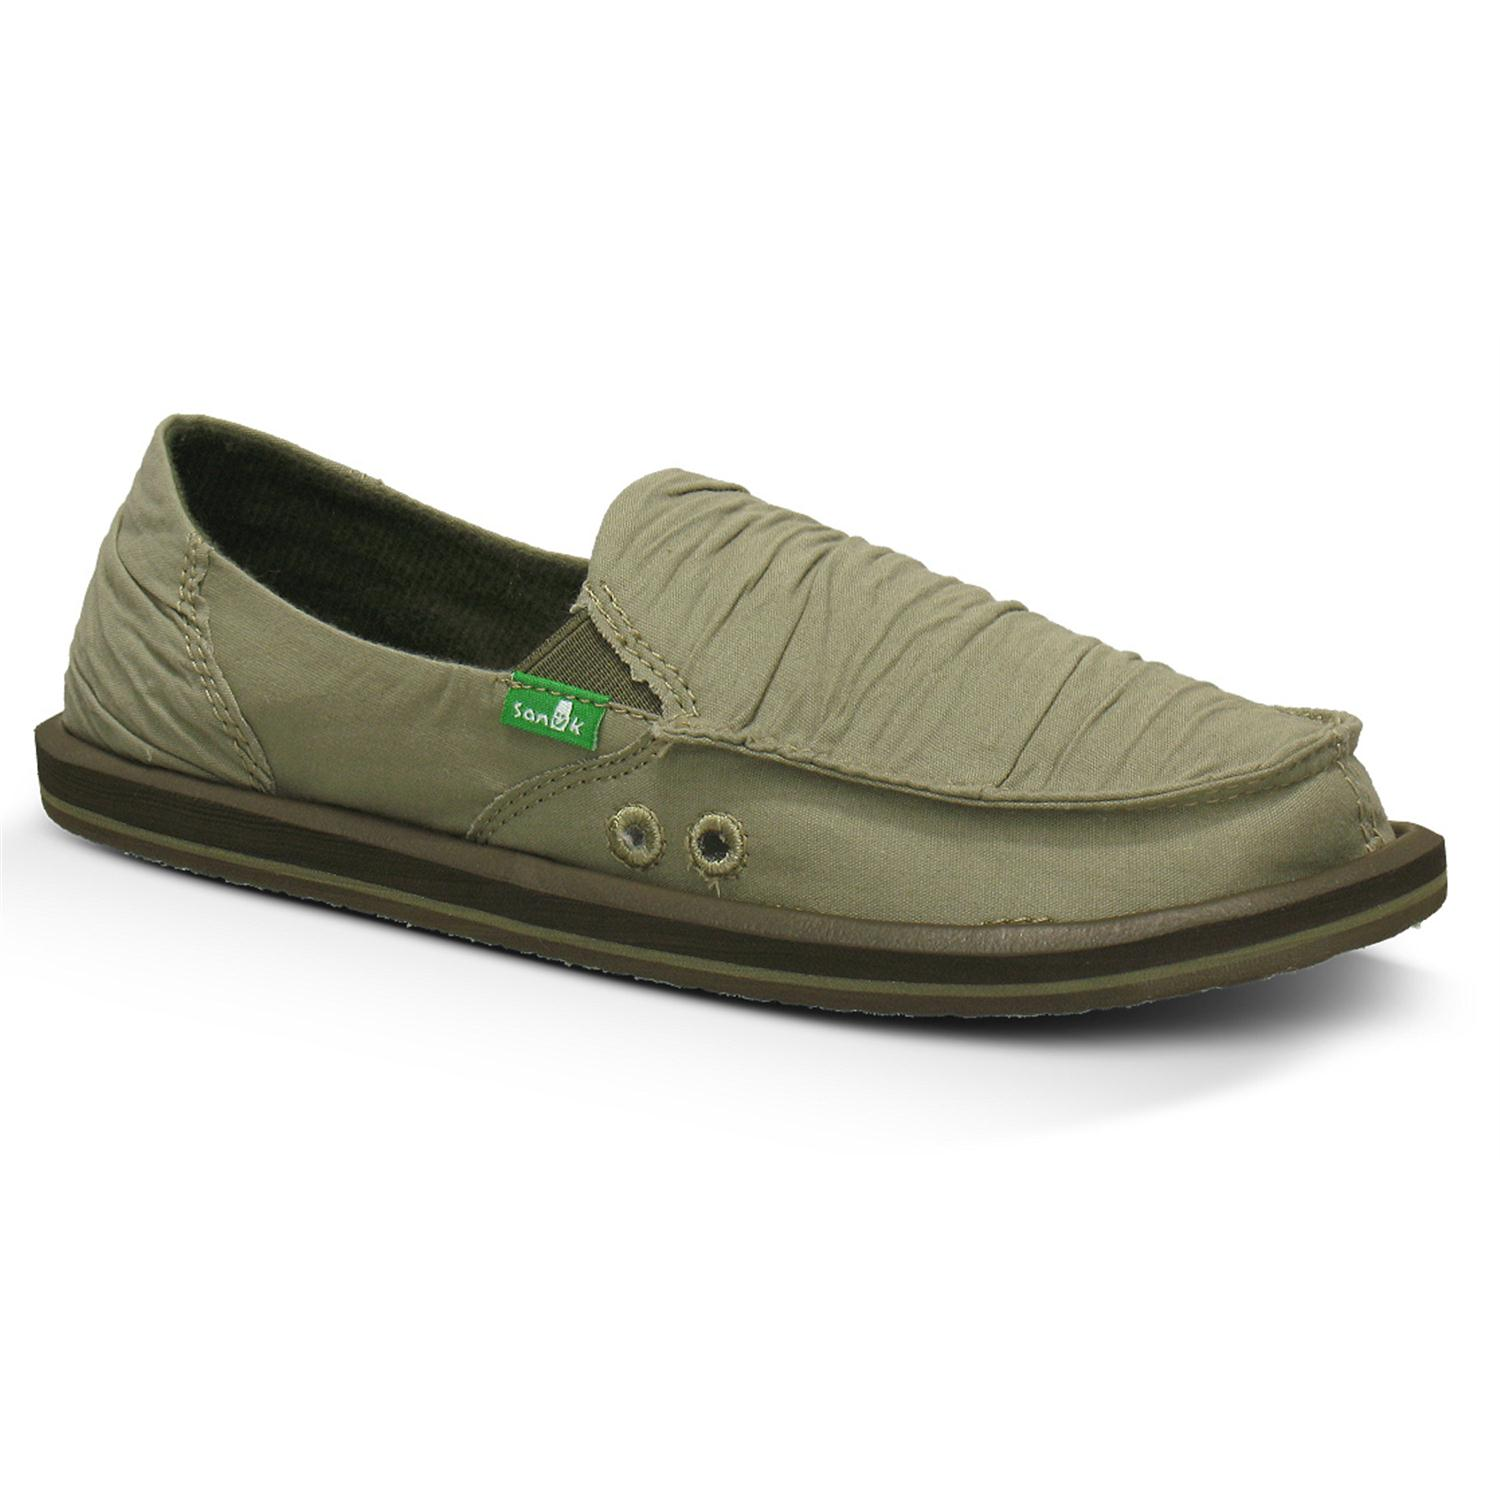 sanuk shuffle slip on shoes s evo outlet